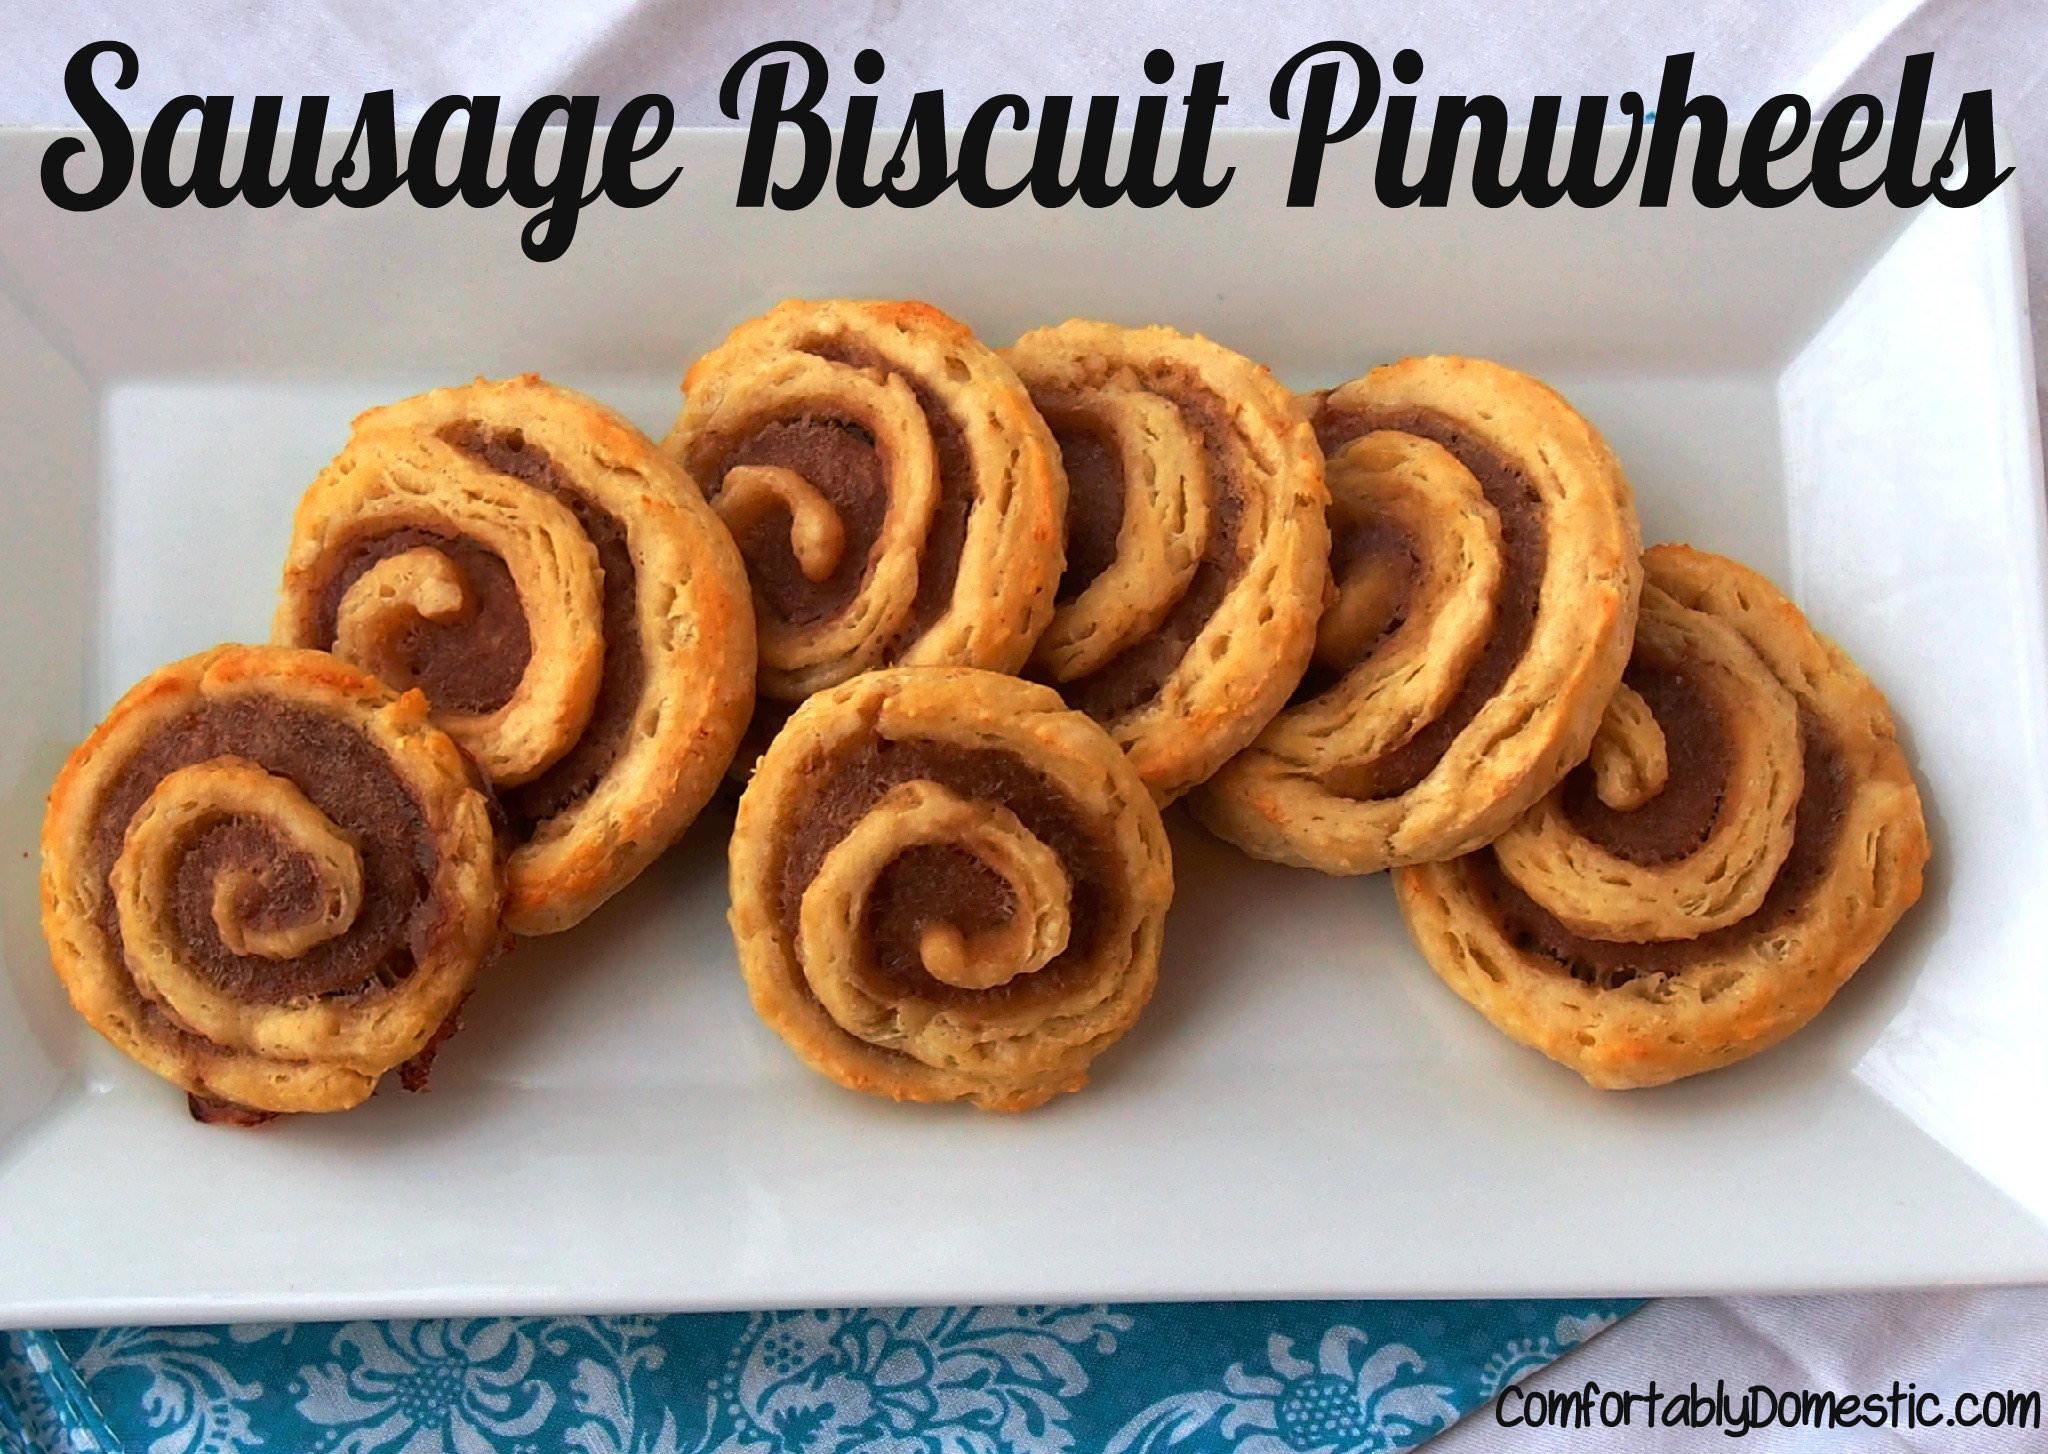 Sausage biscuit pinwheels are an easy appetizer to make. Tangy, buttery biscuit dough wraps around savory sausage for deliciously and attractive appetizer. | ComfortablyDomestic.com